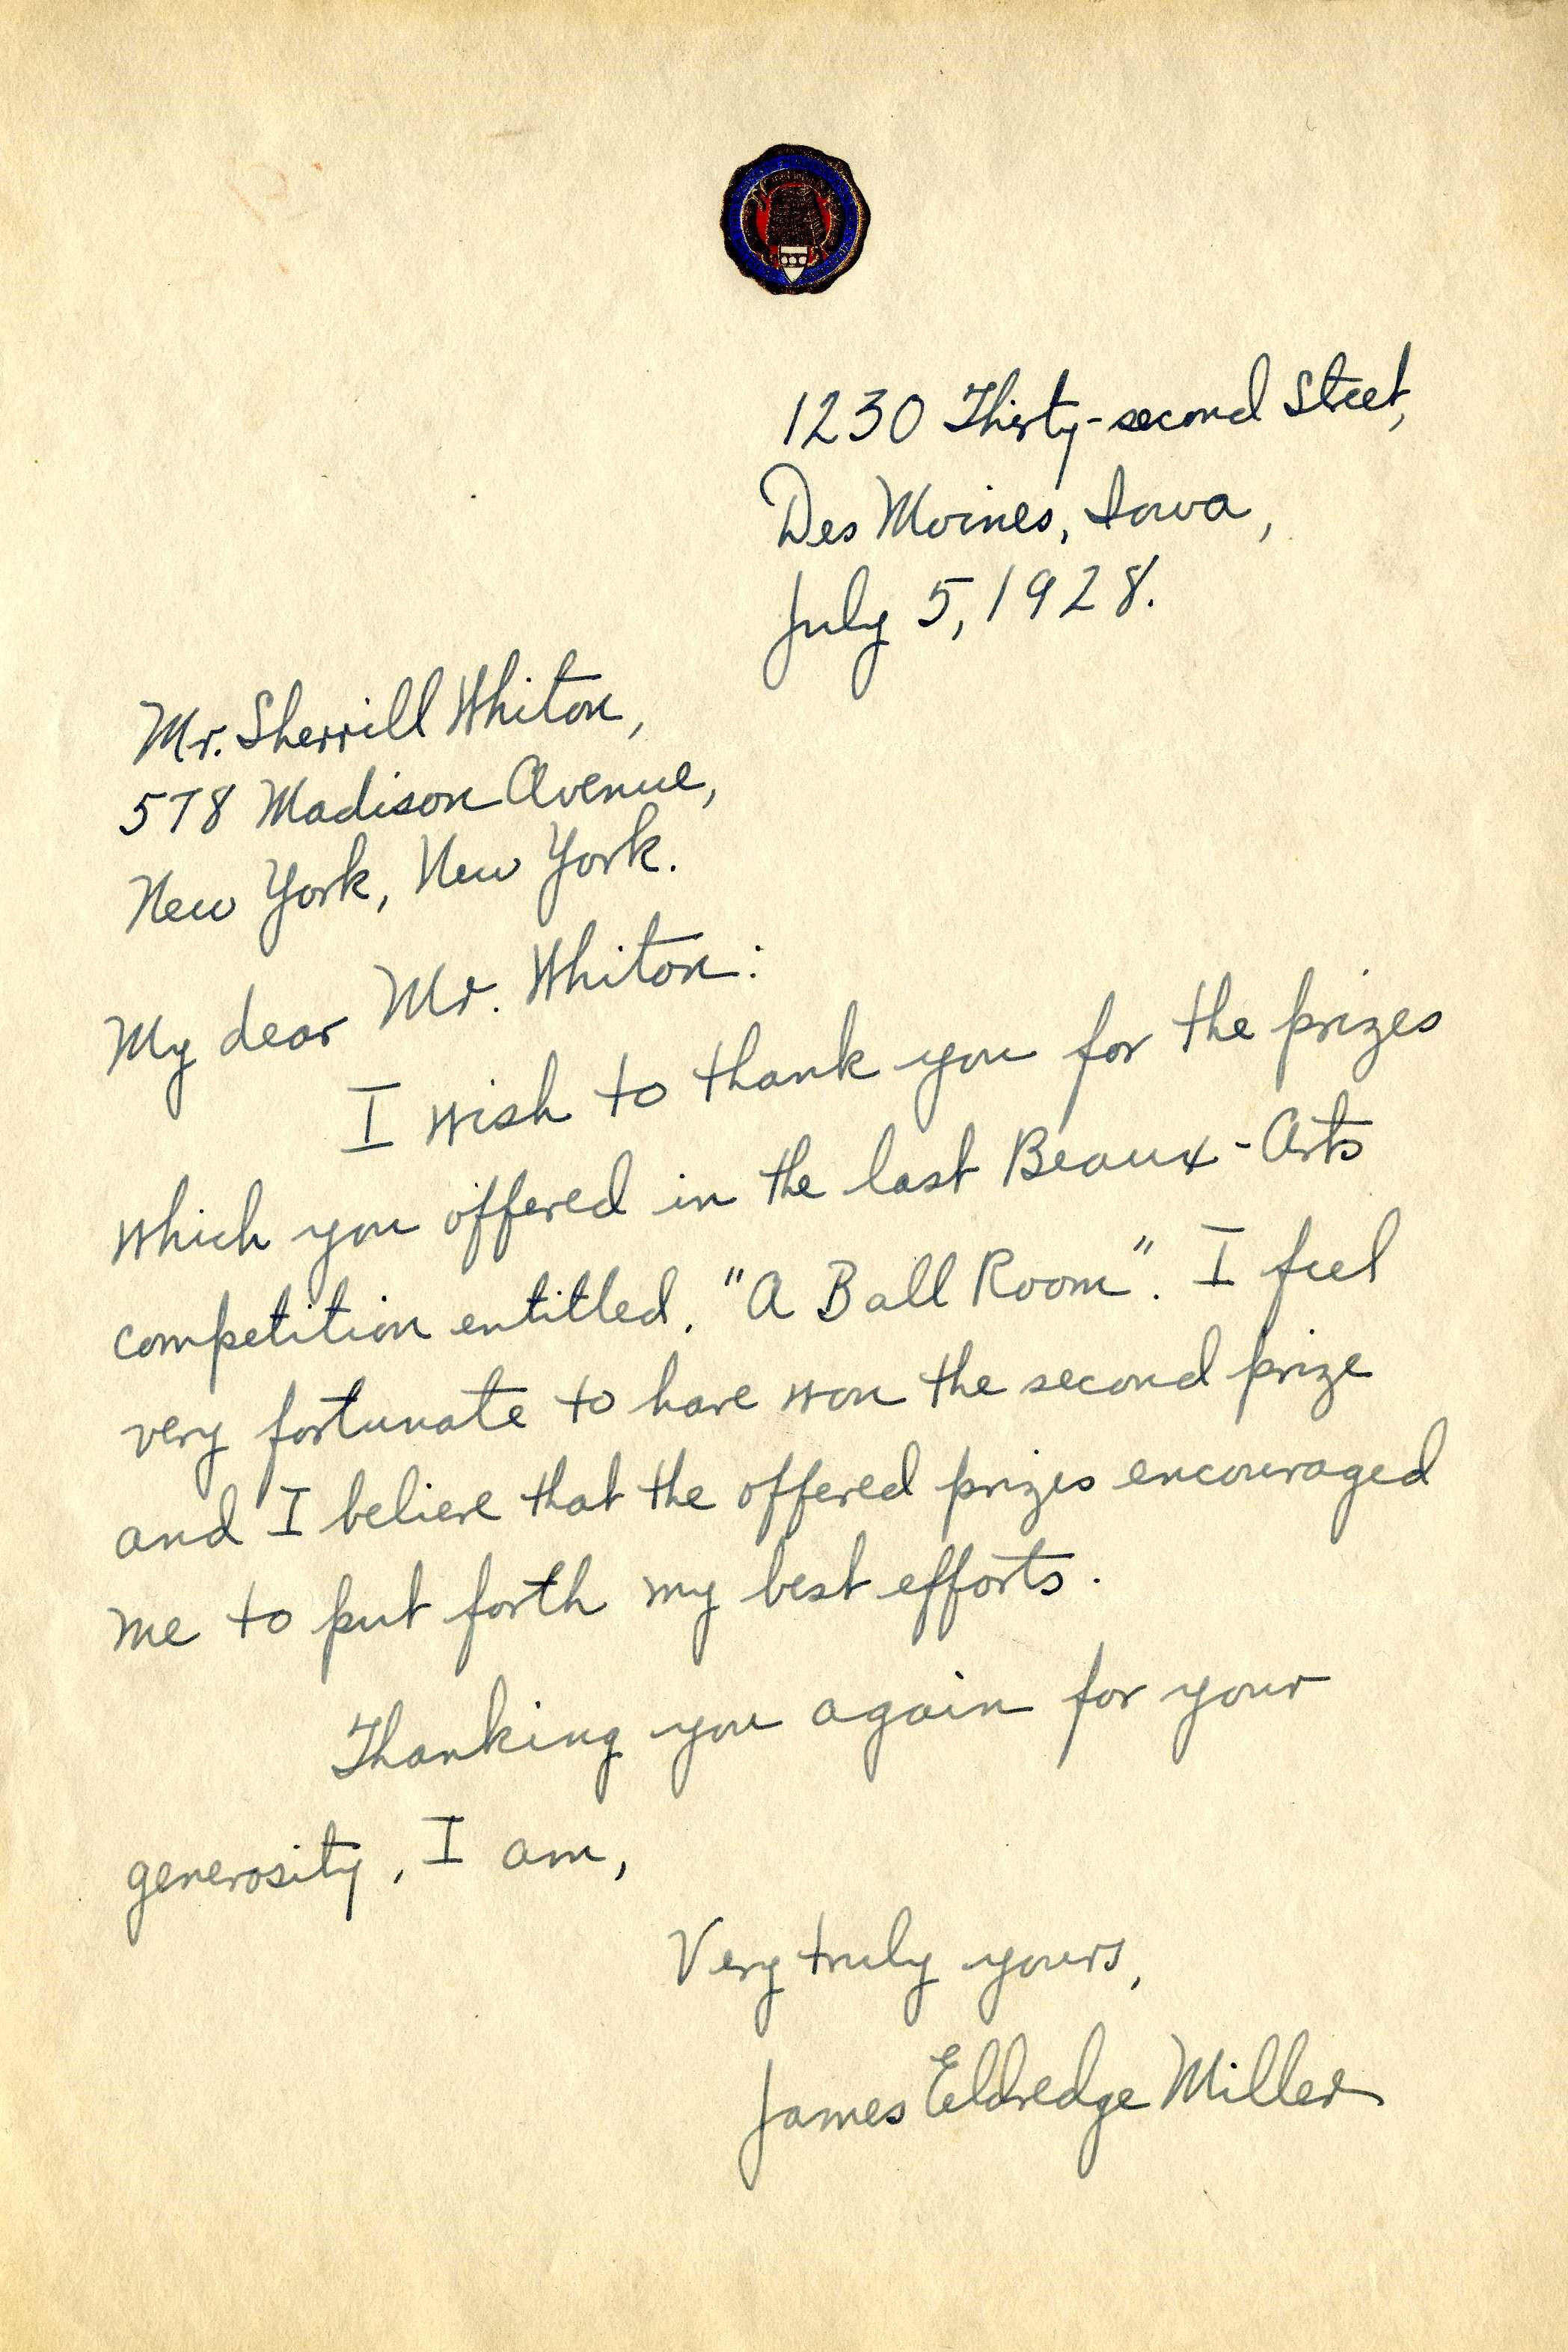 Sherrill Whiton Correspondence: In addition to being a leading educator in the field of interior design, NYSID founder Sherrill Whiton was also a benefactor. This 1928 letter was written to Whiton to thank him for sponsoring the recent Beaux-Arts Institute's annual design competition. The Institute, of which Whiton was a long-time member, was formed in 1914 by former students of the Ecole des Beaux Arts in Paris who wanted to bring the Ecole's standard of architectural education to the United States. The Institute taught classes in architecture as well as mural painting and sculpture, and held an annual design competition.